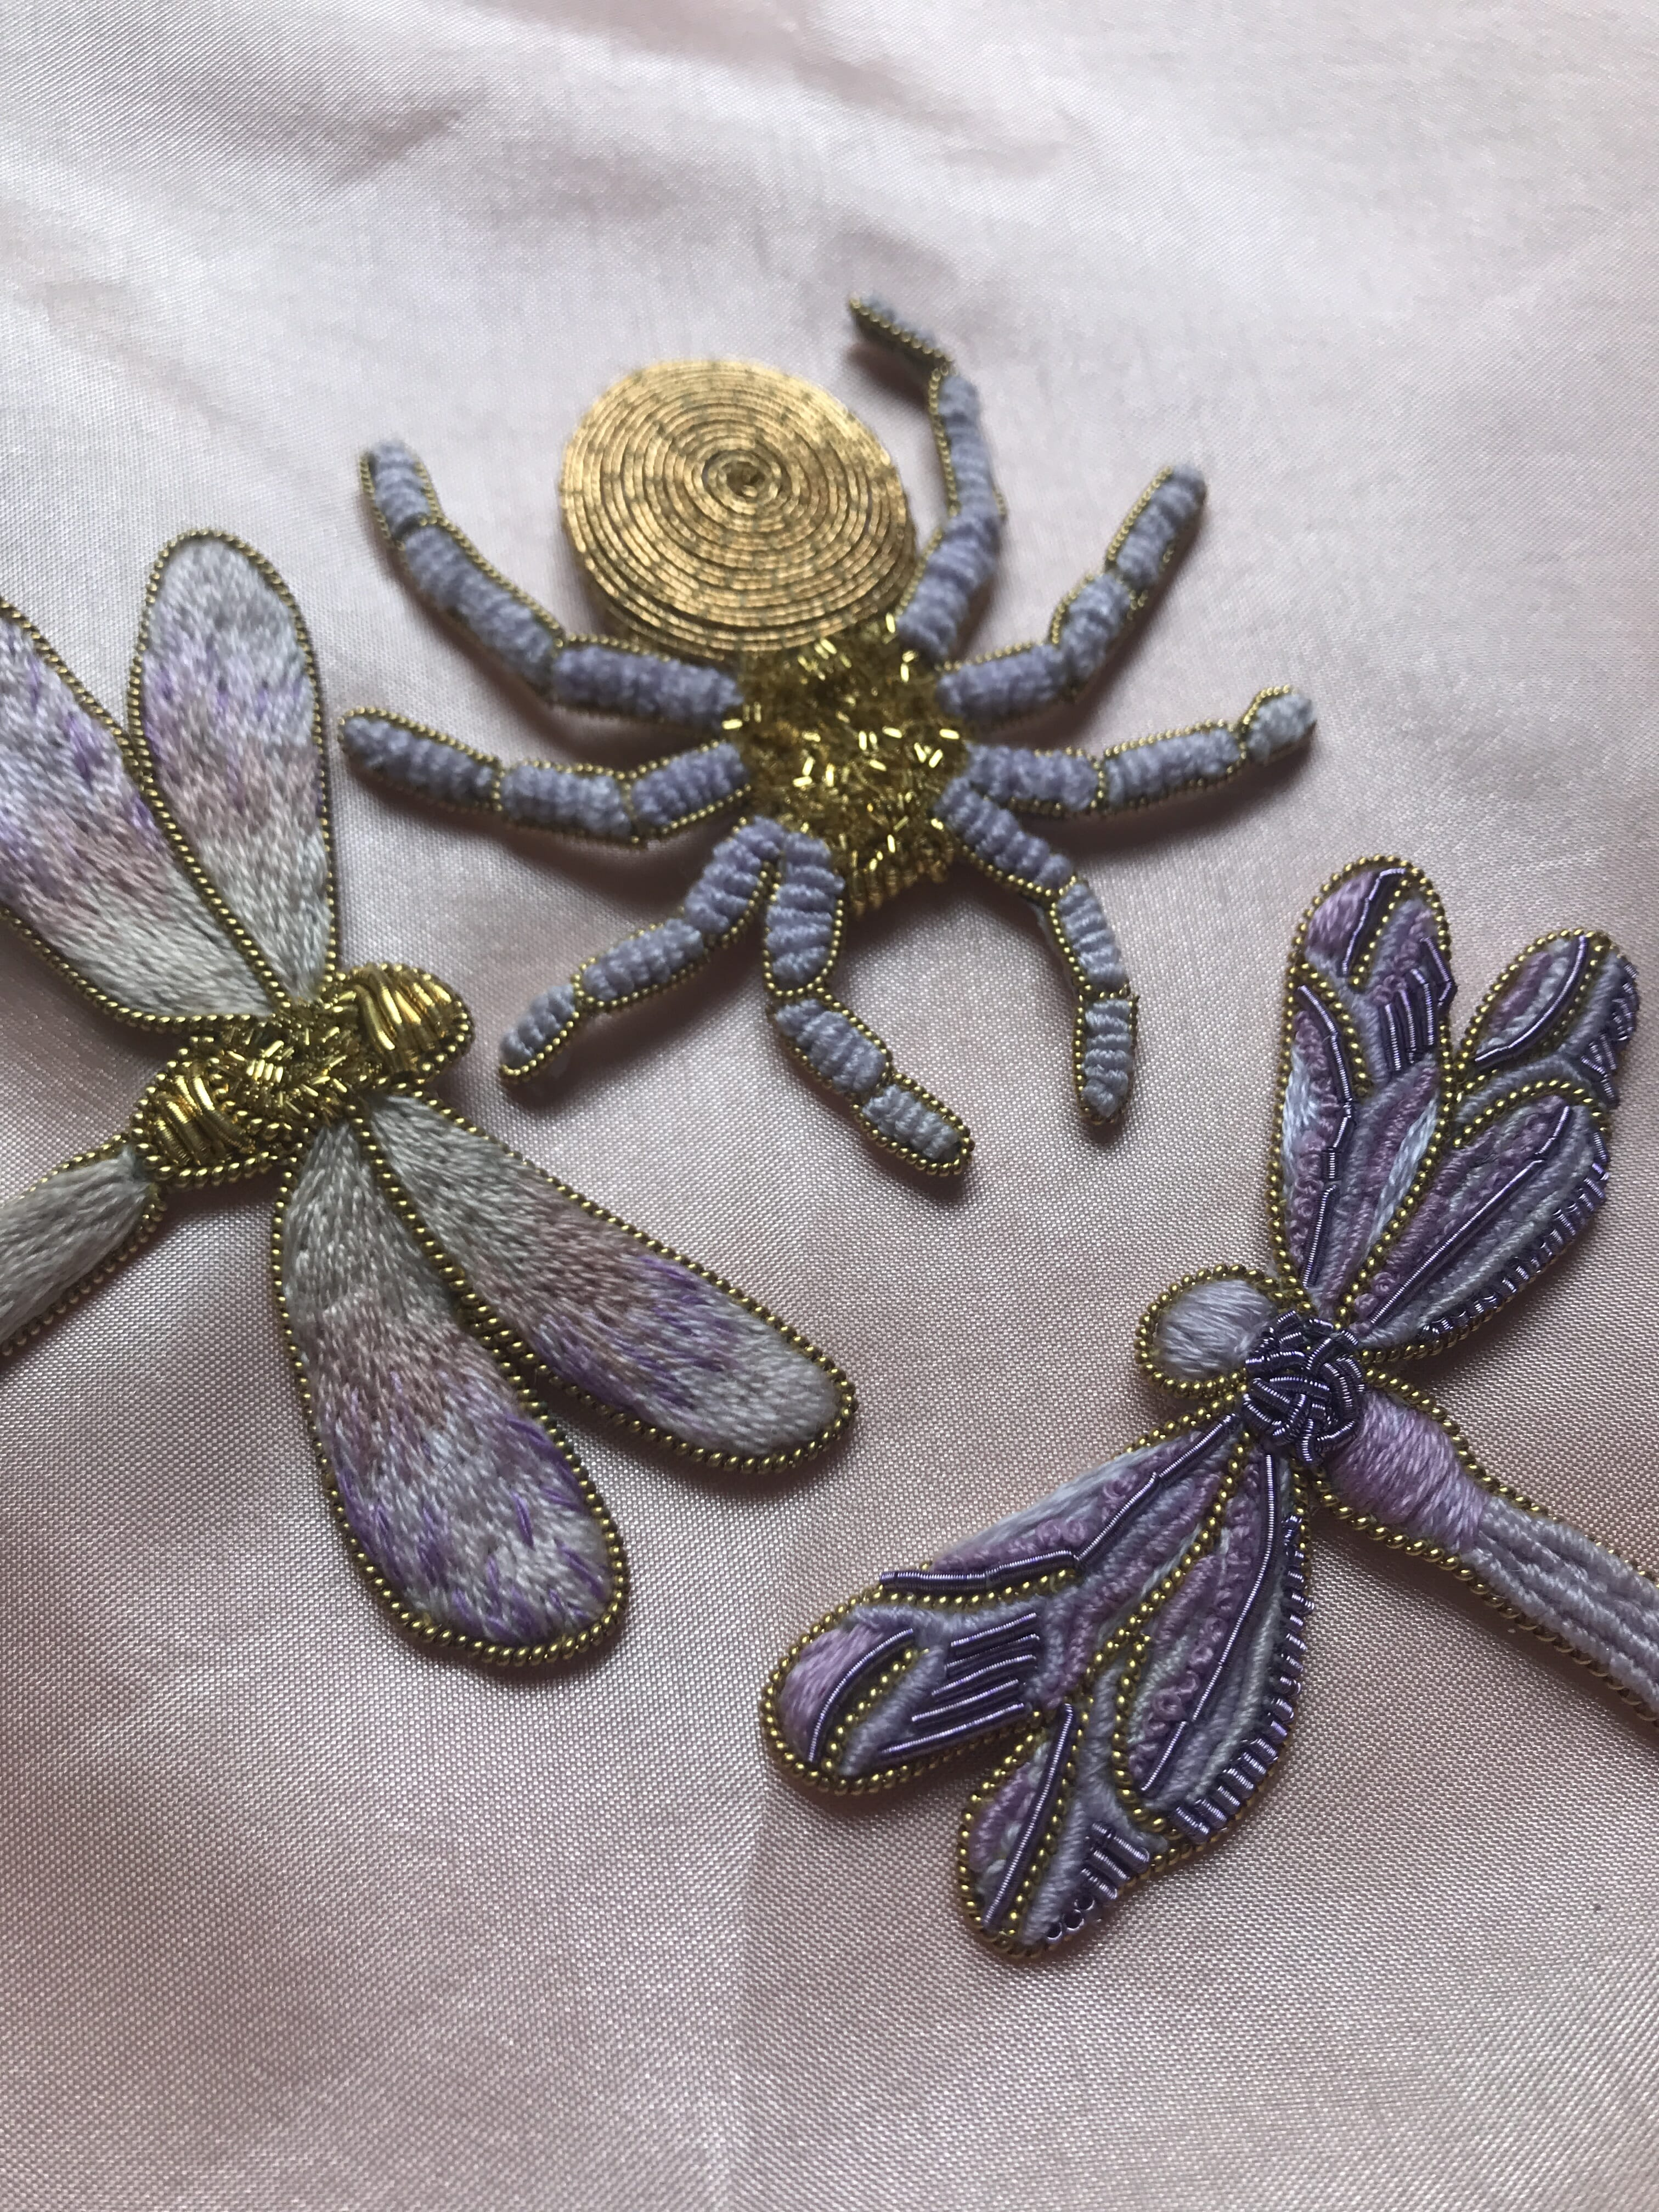 Rie's goldwork spiders